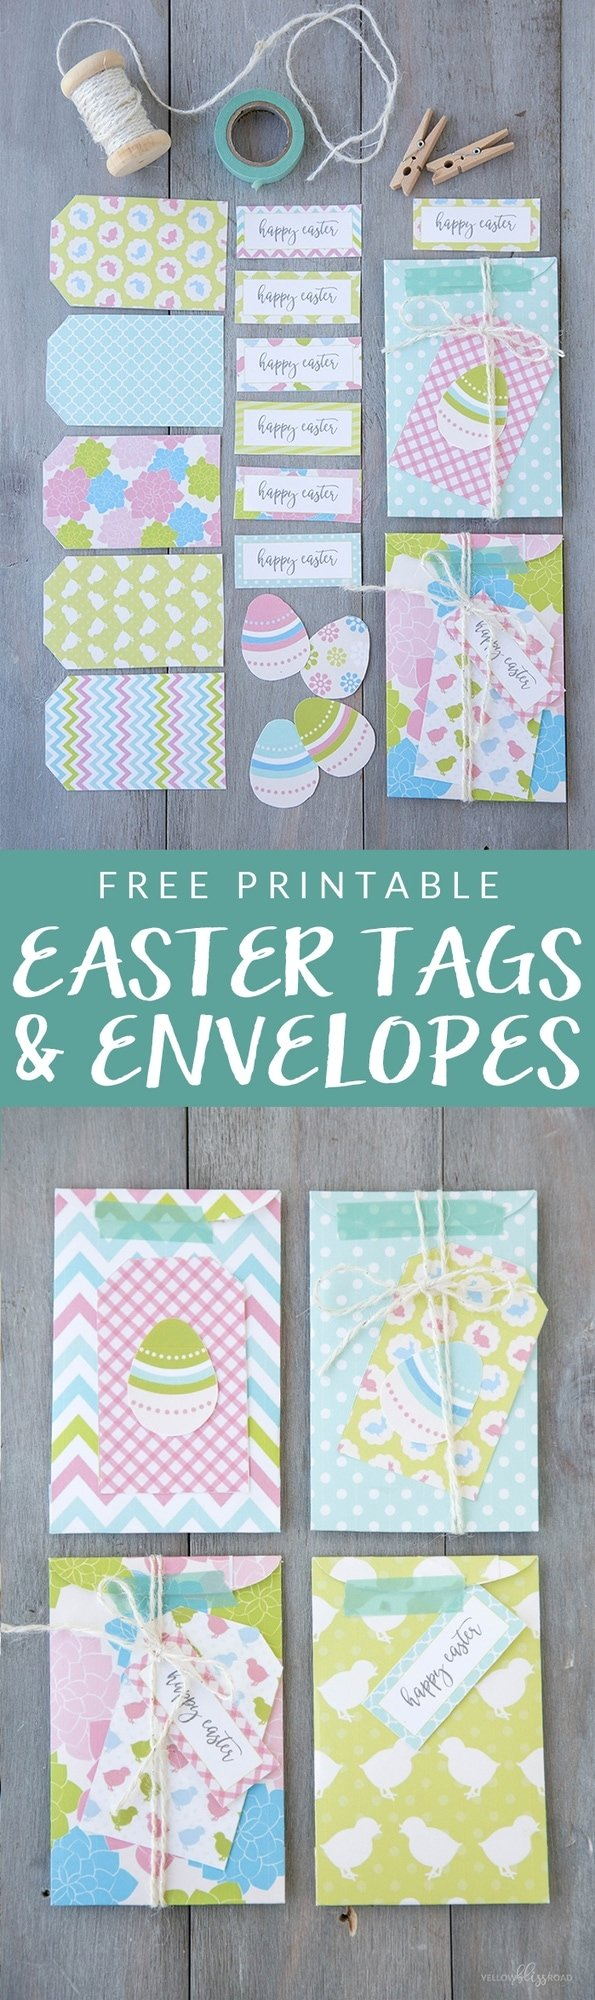 Free Printable Easter Tags, Labels and Envelopes